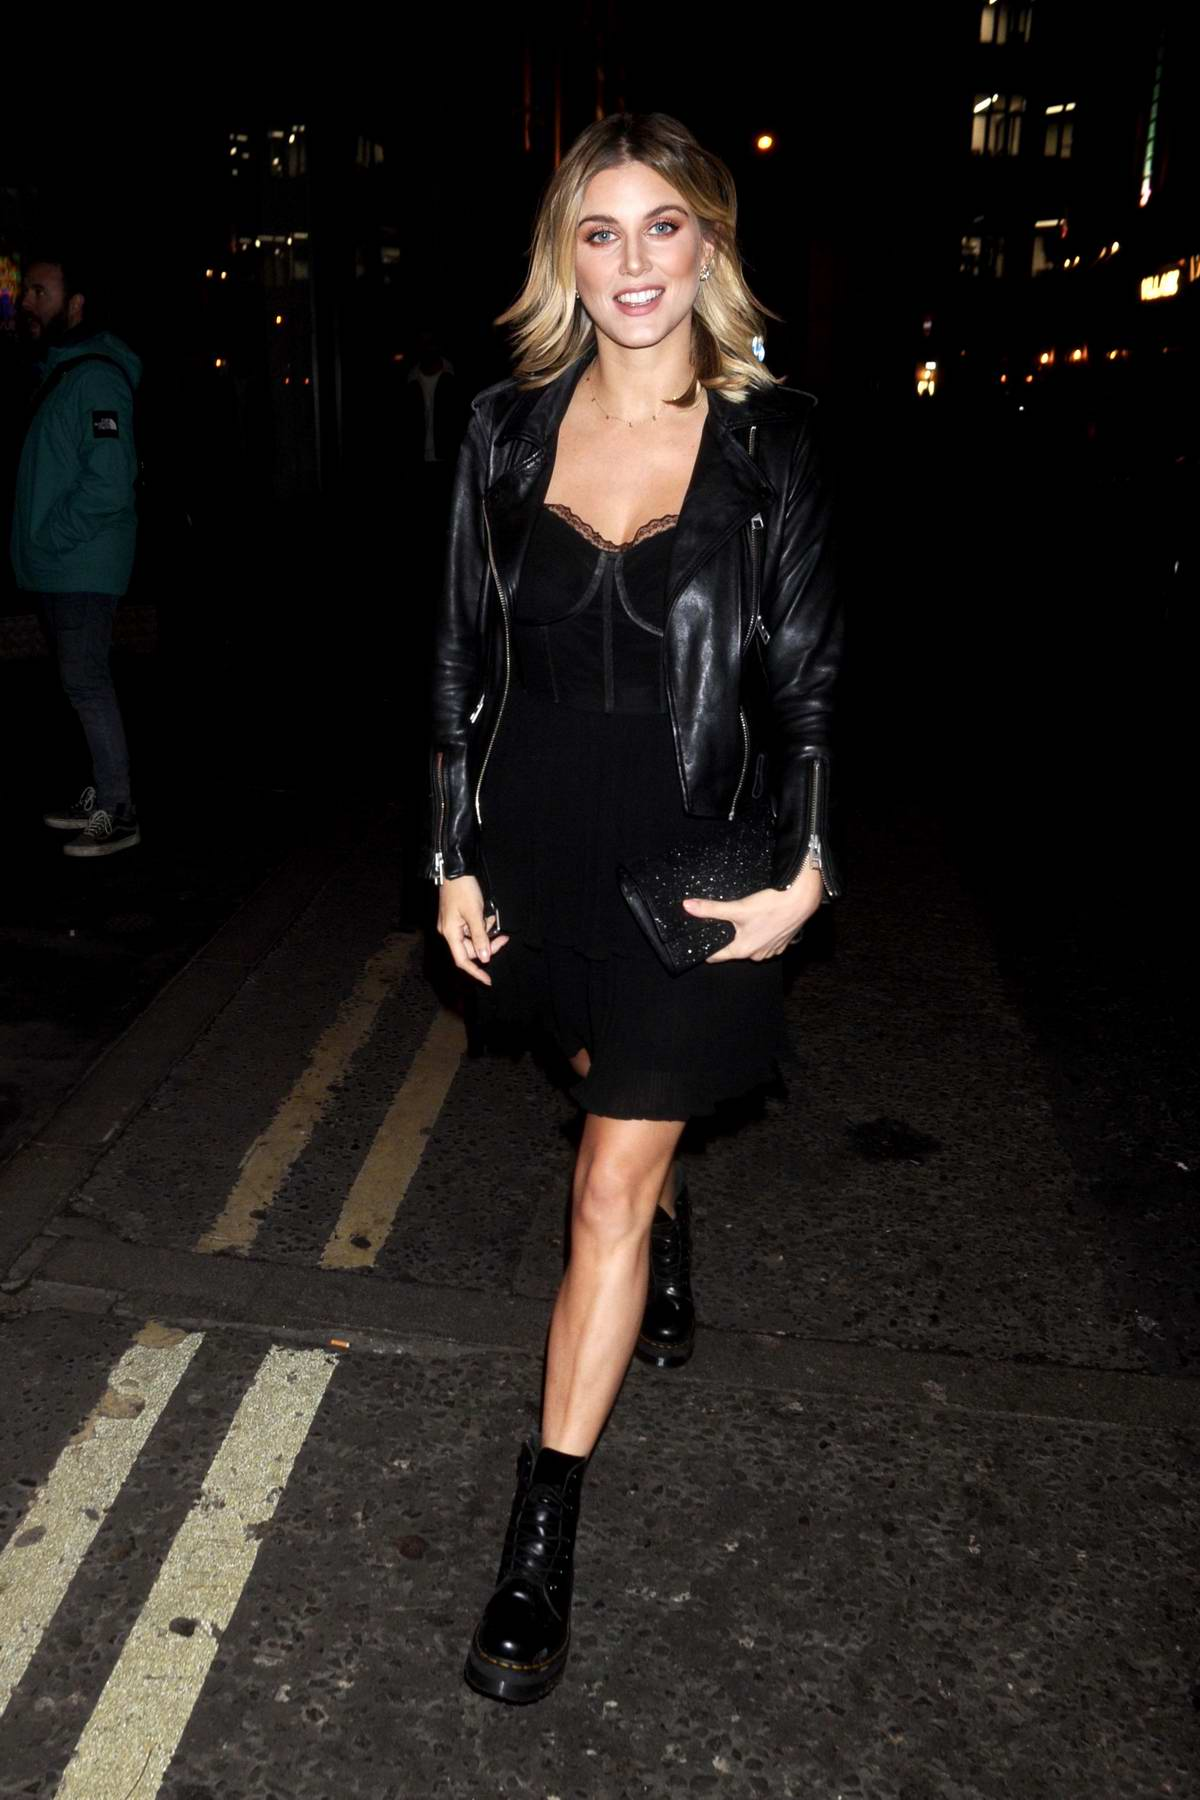 Ashley James attends Cara Delevingne x Nasty Gal Launch Party in London, UK